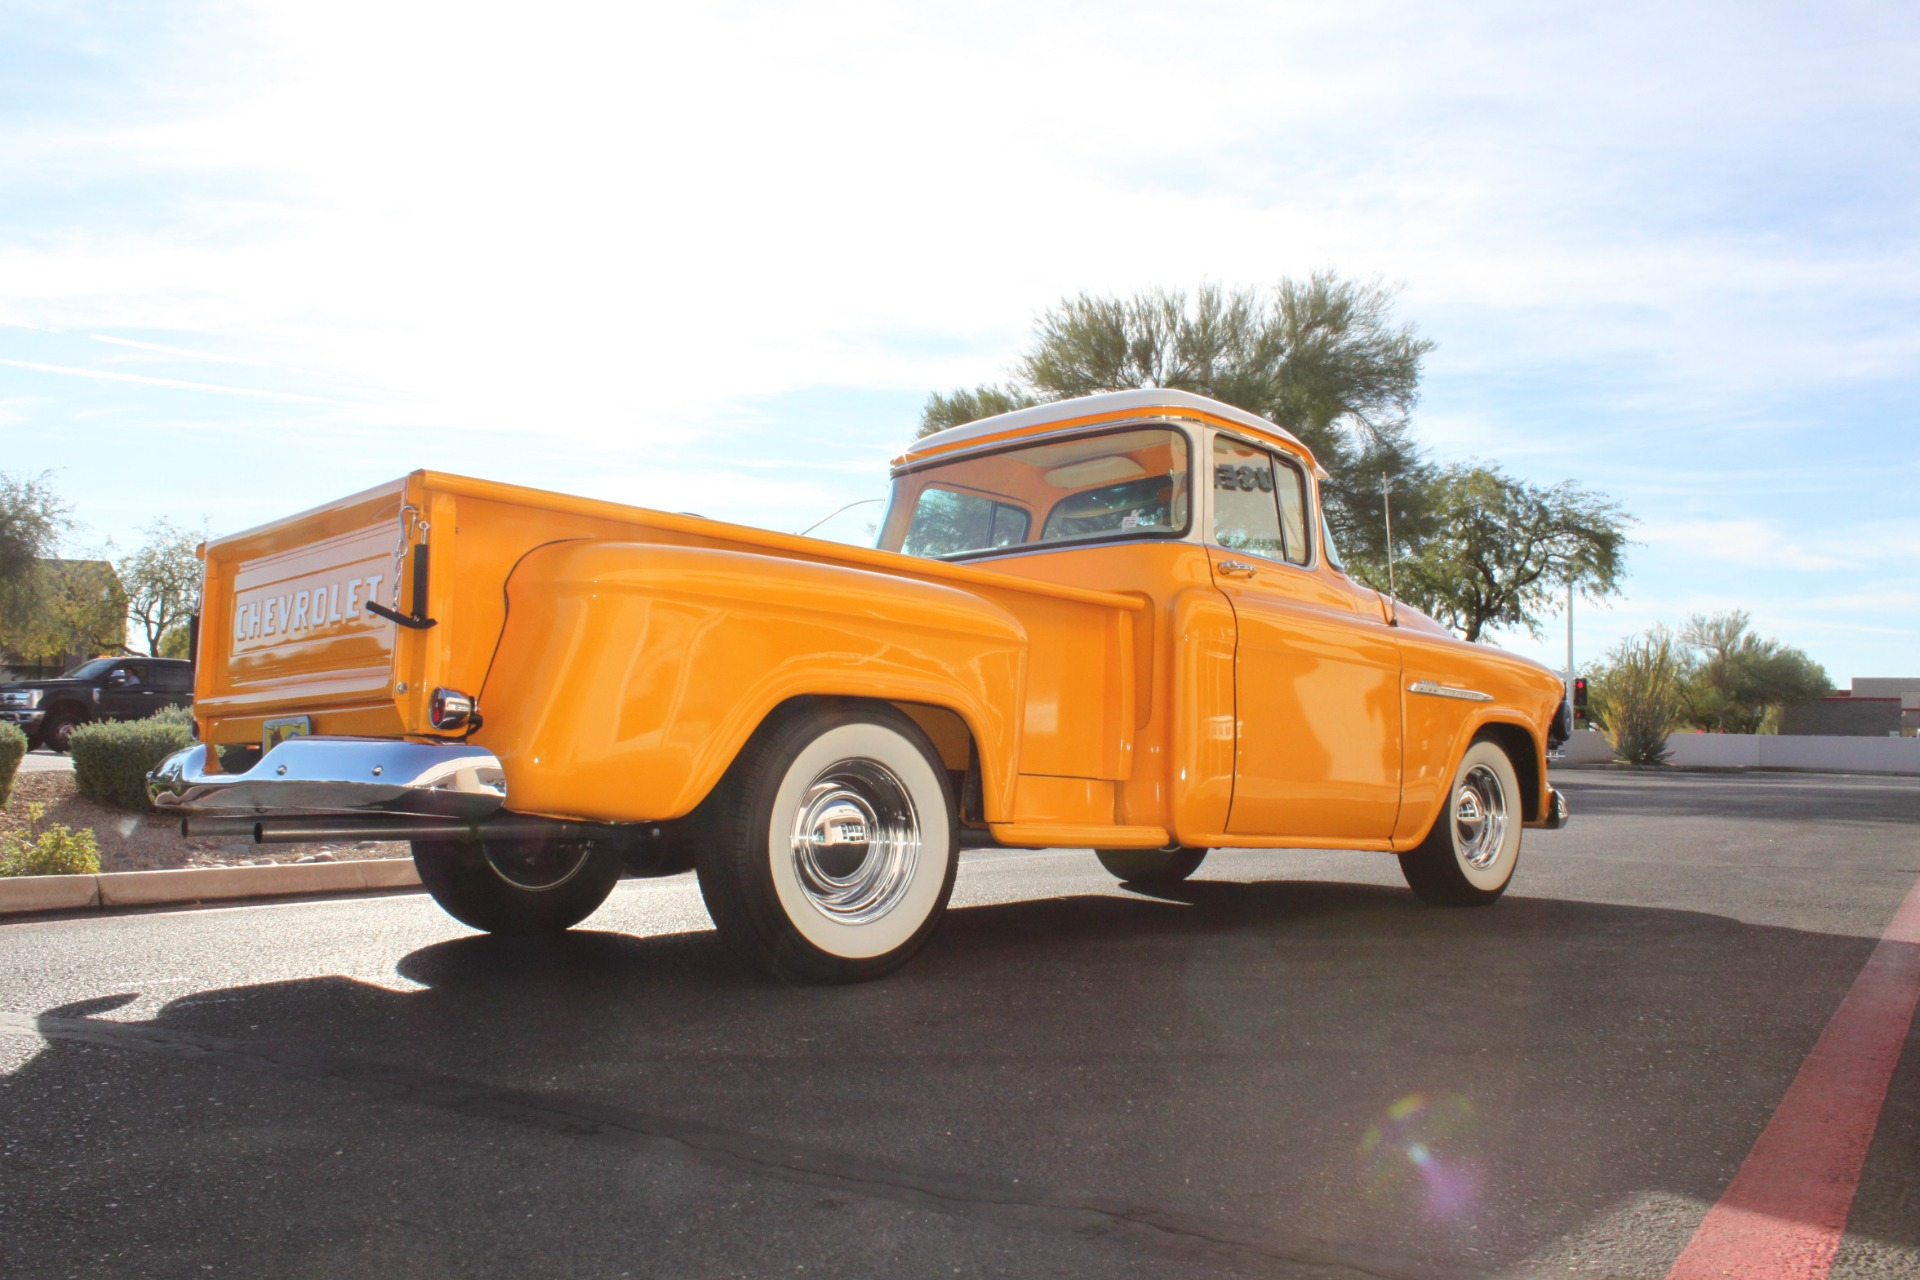 Used-1955-Chevrolet-3100-Pickup-Truck-Land-Cruiser